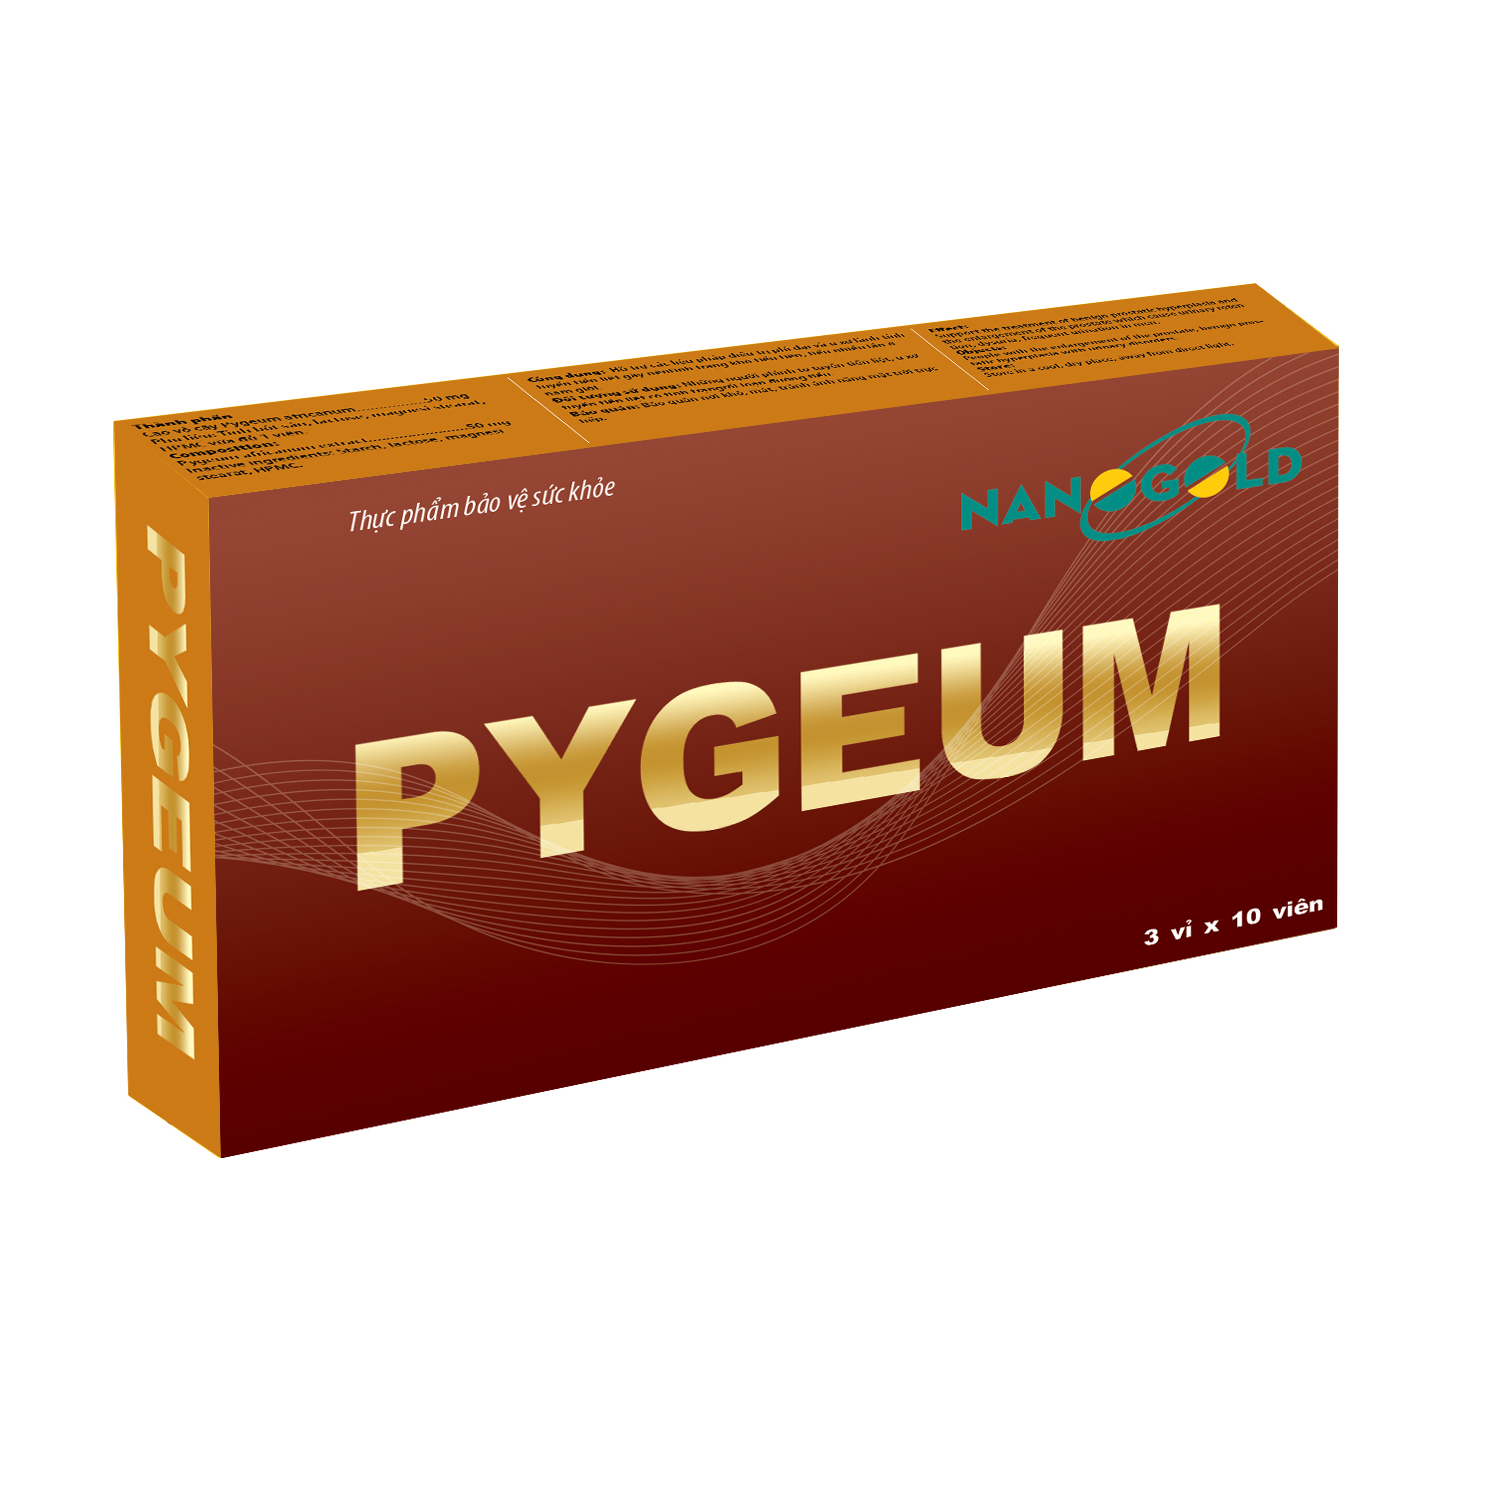 Tiền Liệt Tuyến Pygeum – Hỗ Trợ Điều Trị Tiền Liệt Tuyến